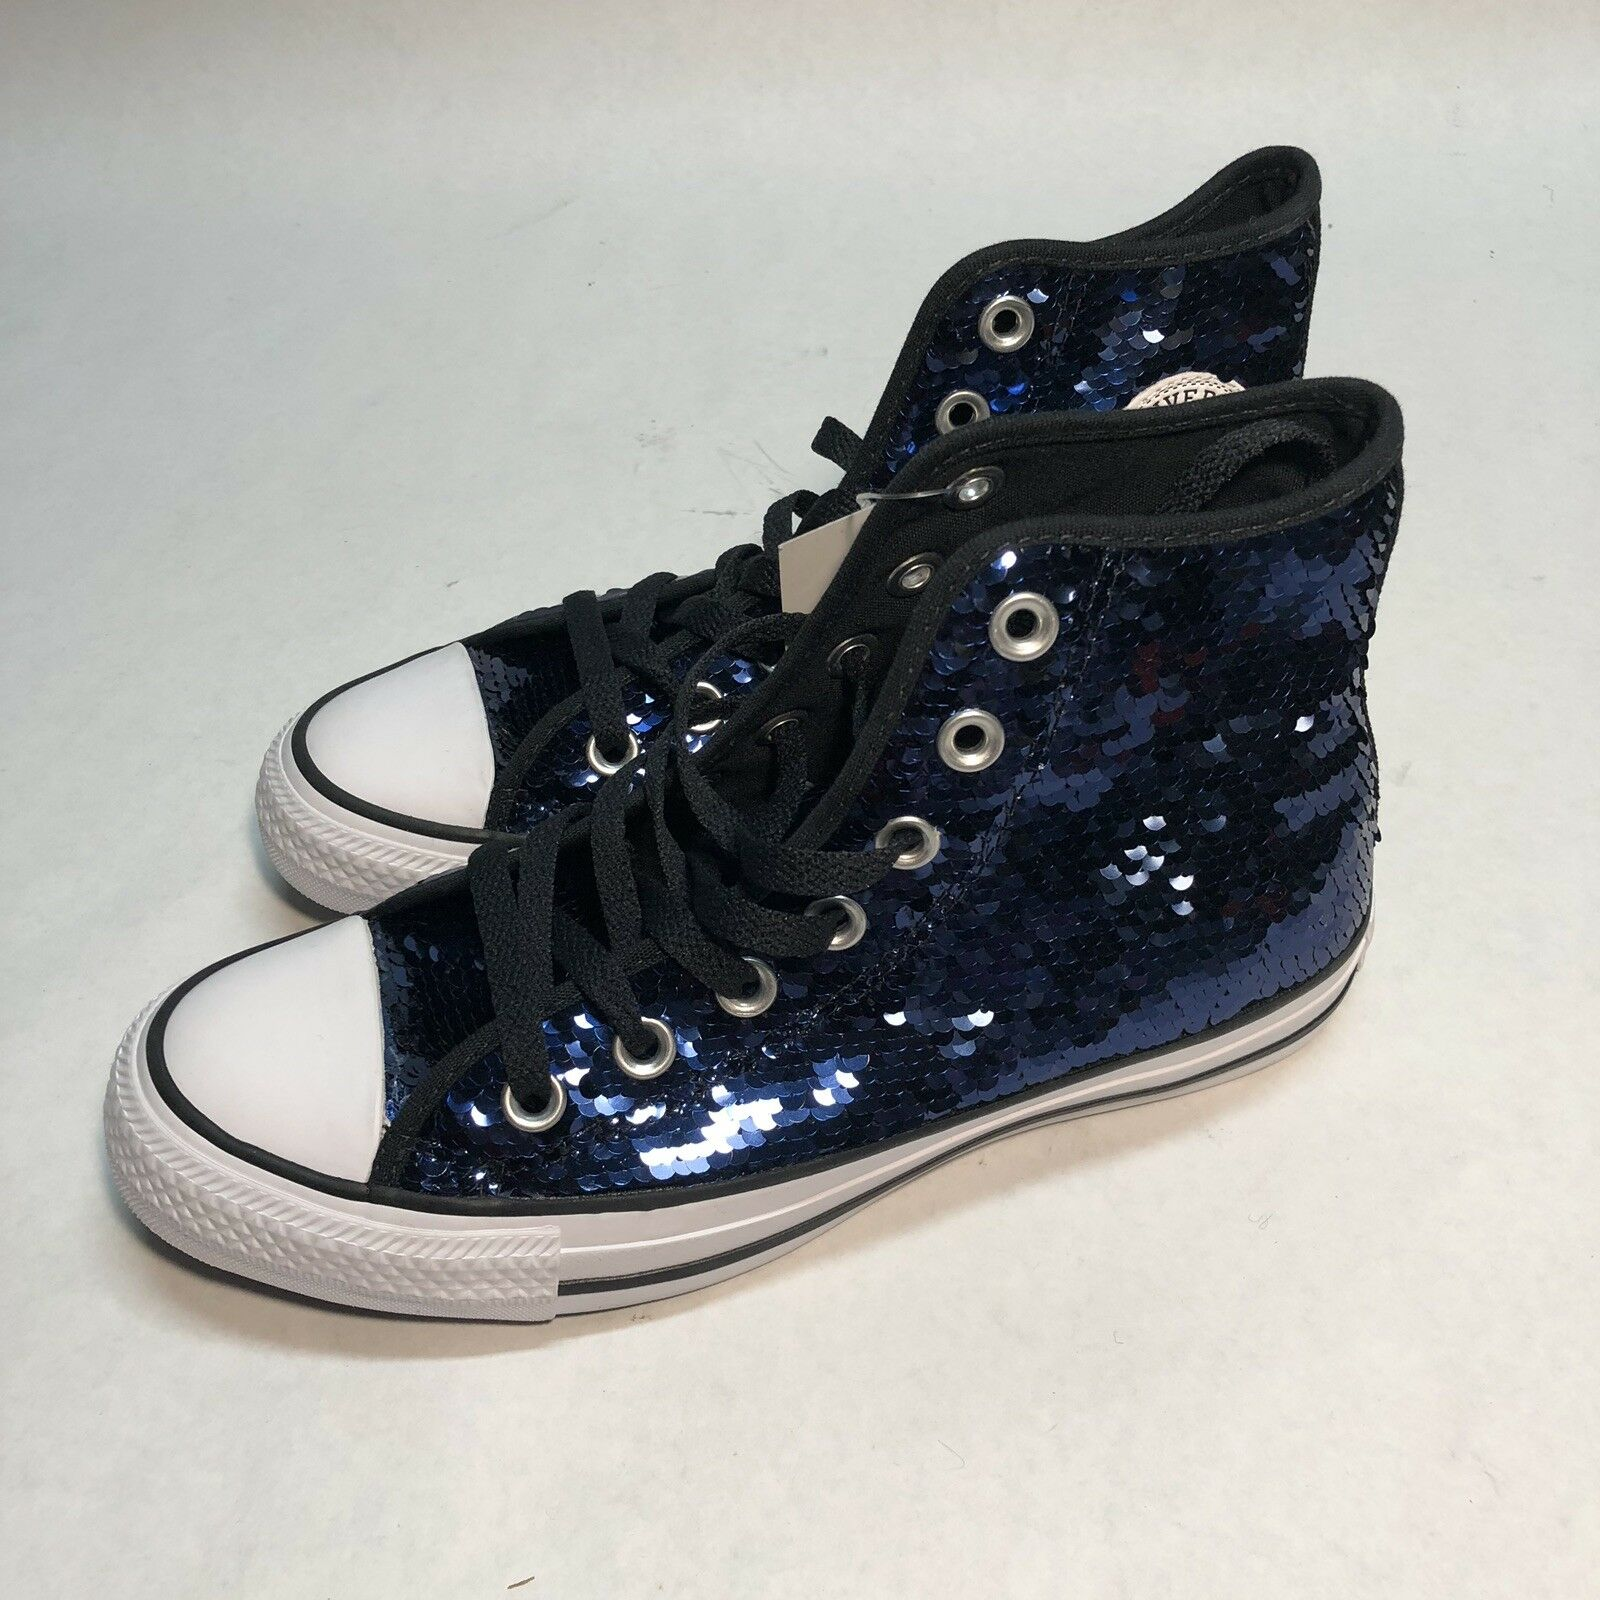 Converse All Star High Top Dark bluee Sequin Fashion Sneakers Sneakers Sneakers 557923C 4bcc84